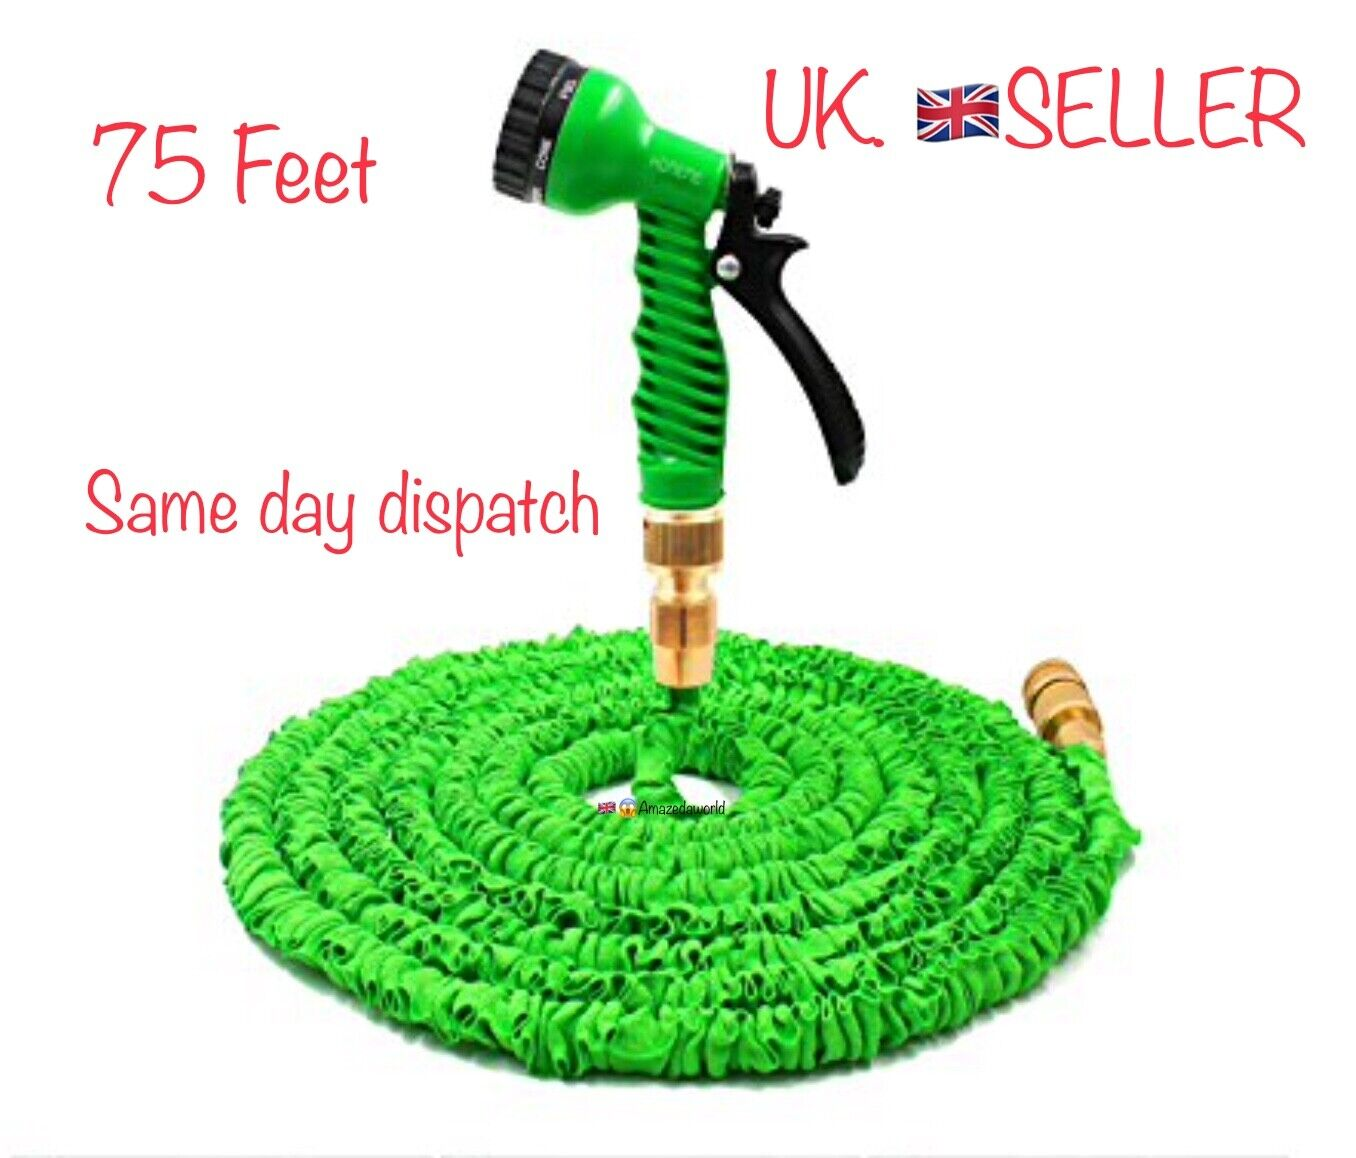 Brand new 75ft heavy duty metal fitting tangle free Magic hose with spray gun